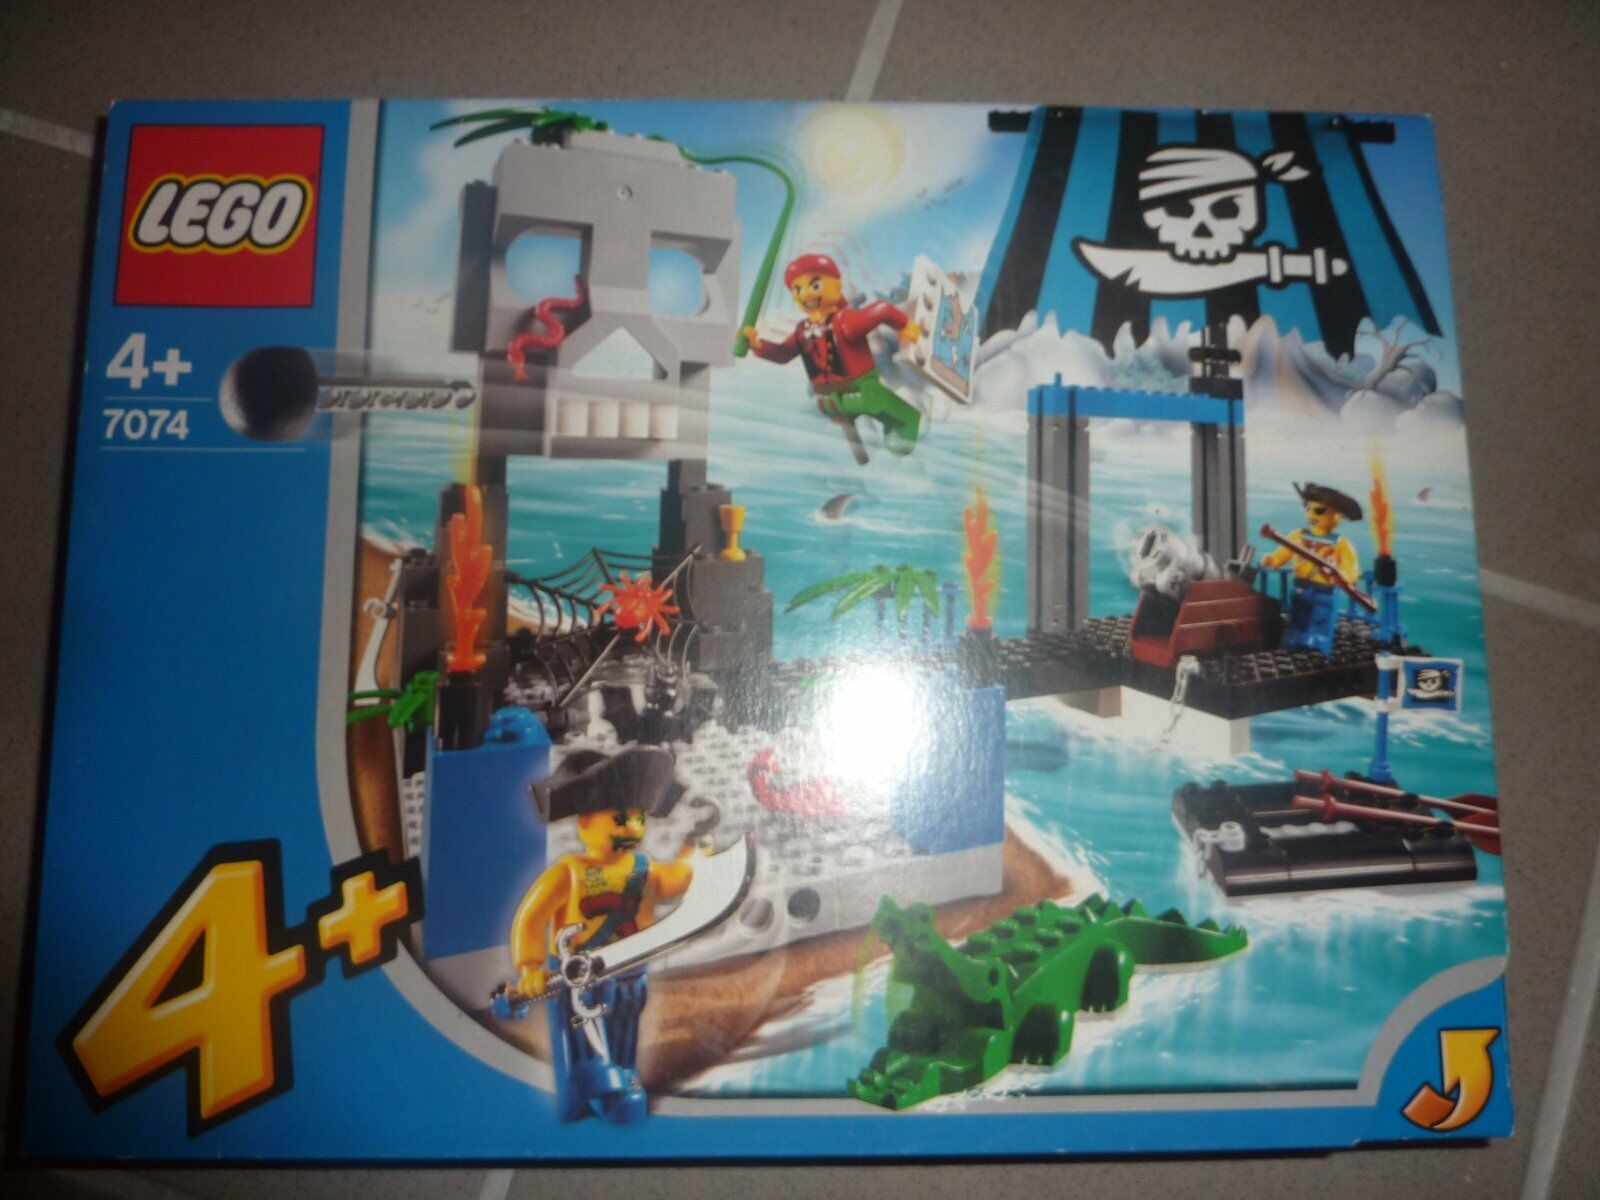 LEGO 4JUNIORS 7074 - Pirateninsel  NEU  OVP